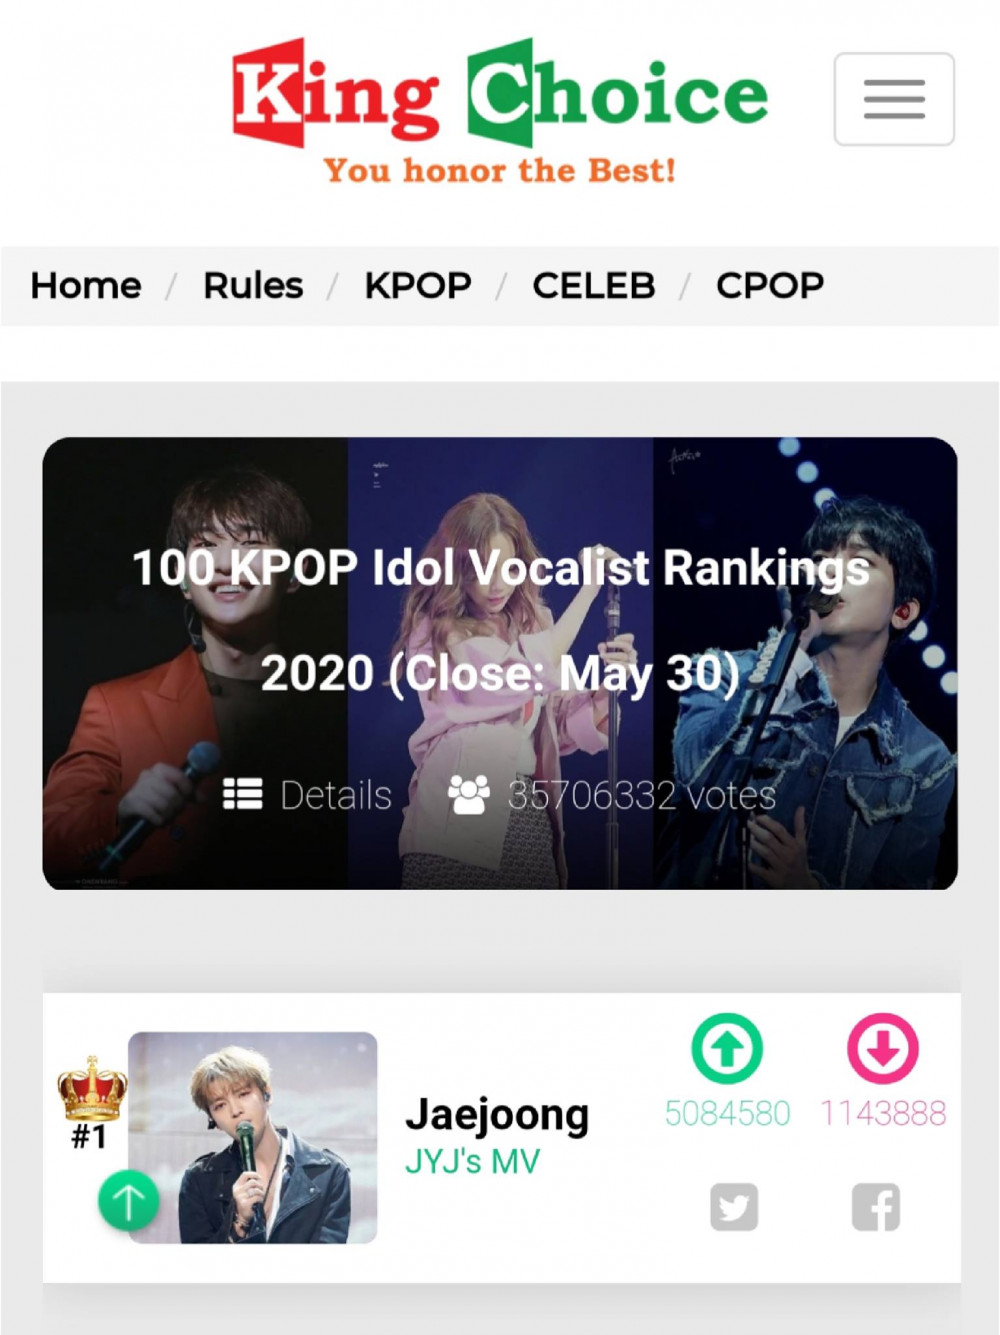 Jaejoong Ranked No 1 K Pop Idol Vocalist Of 2020 On King Choice Allkpop